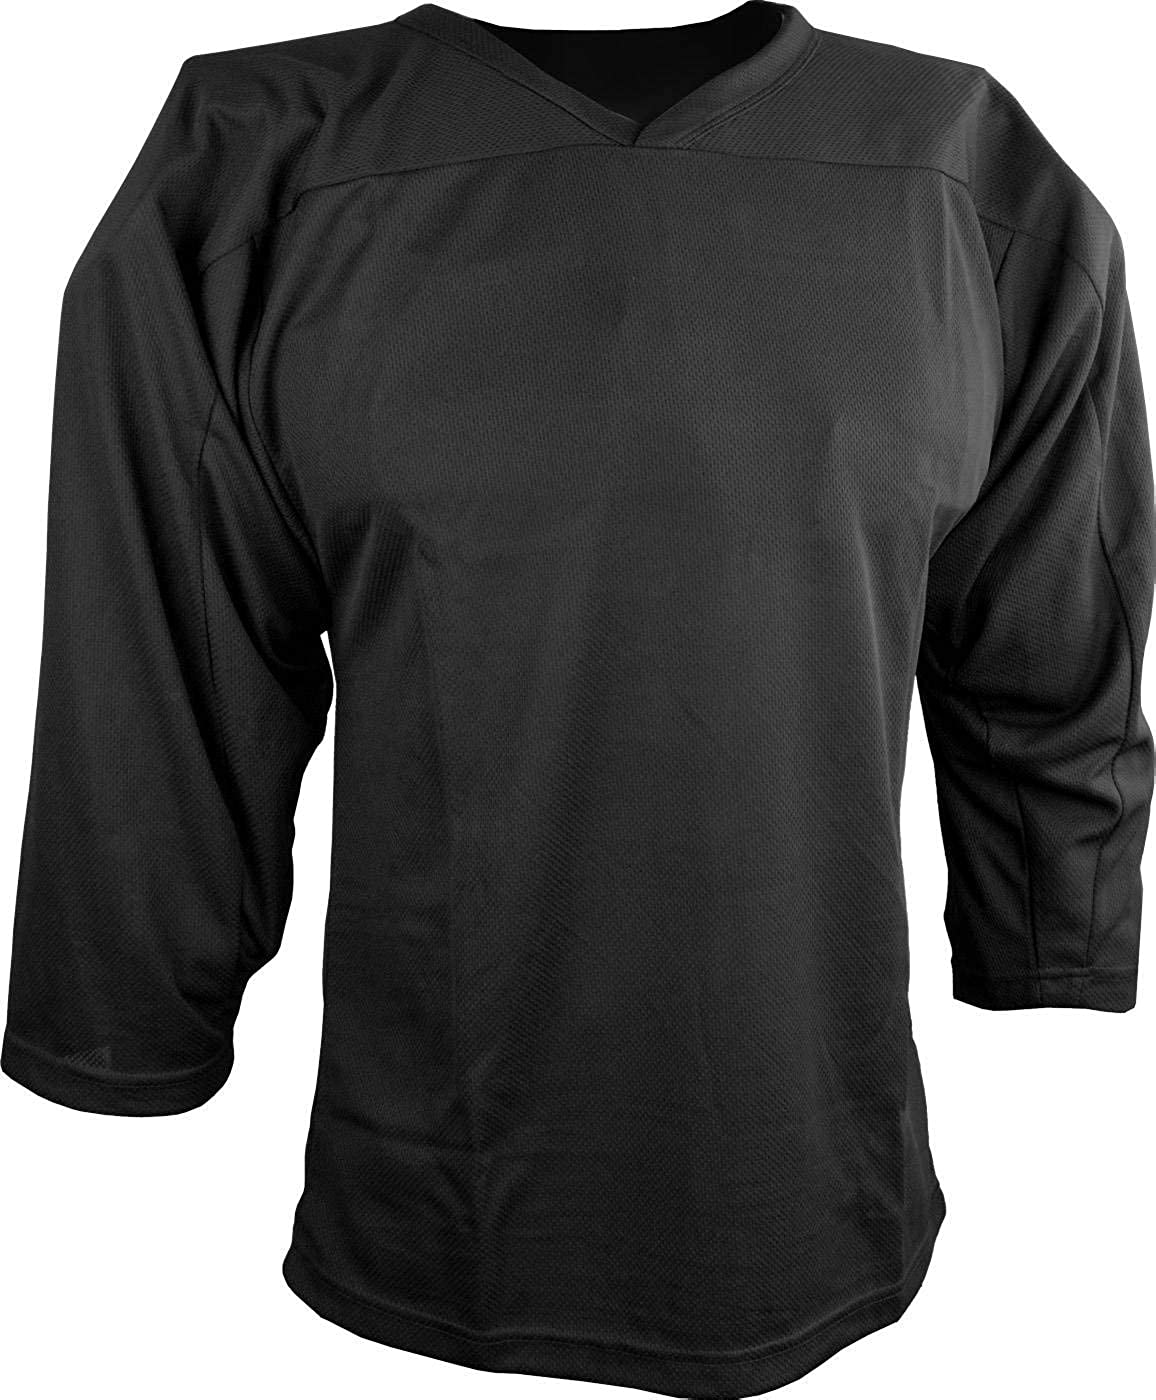 Sports Unlimited Adult Hockey Practice Jersey